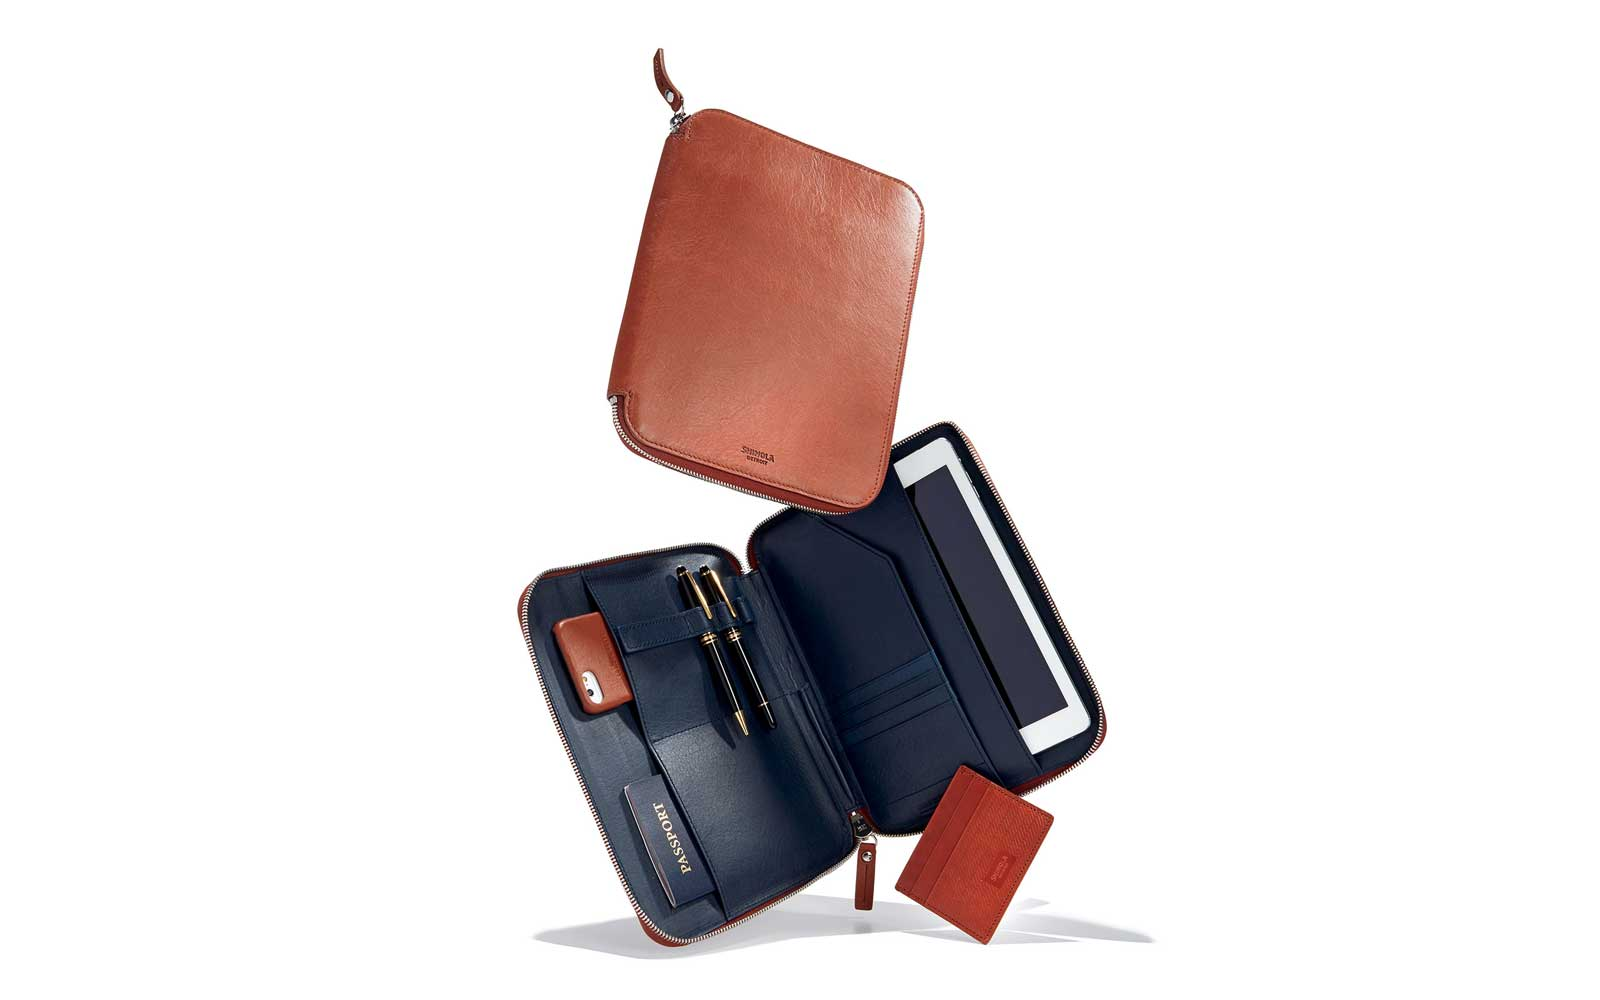 The Tech Case: Shinola portfolio case